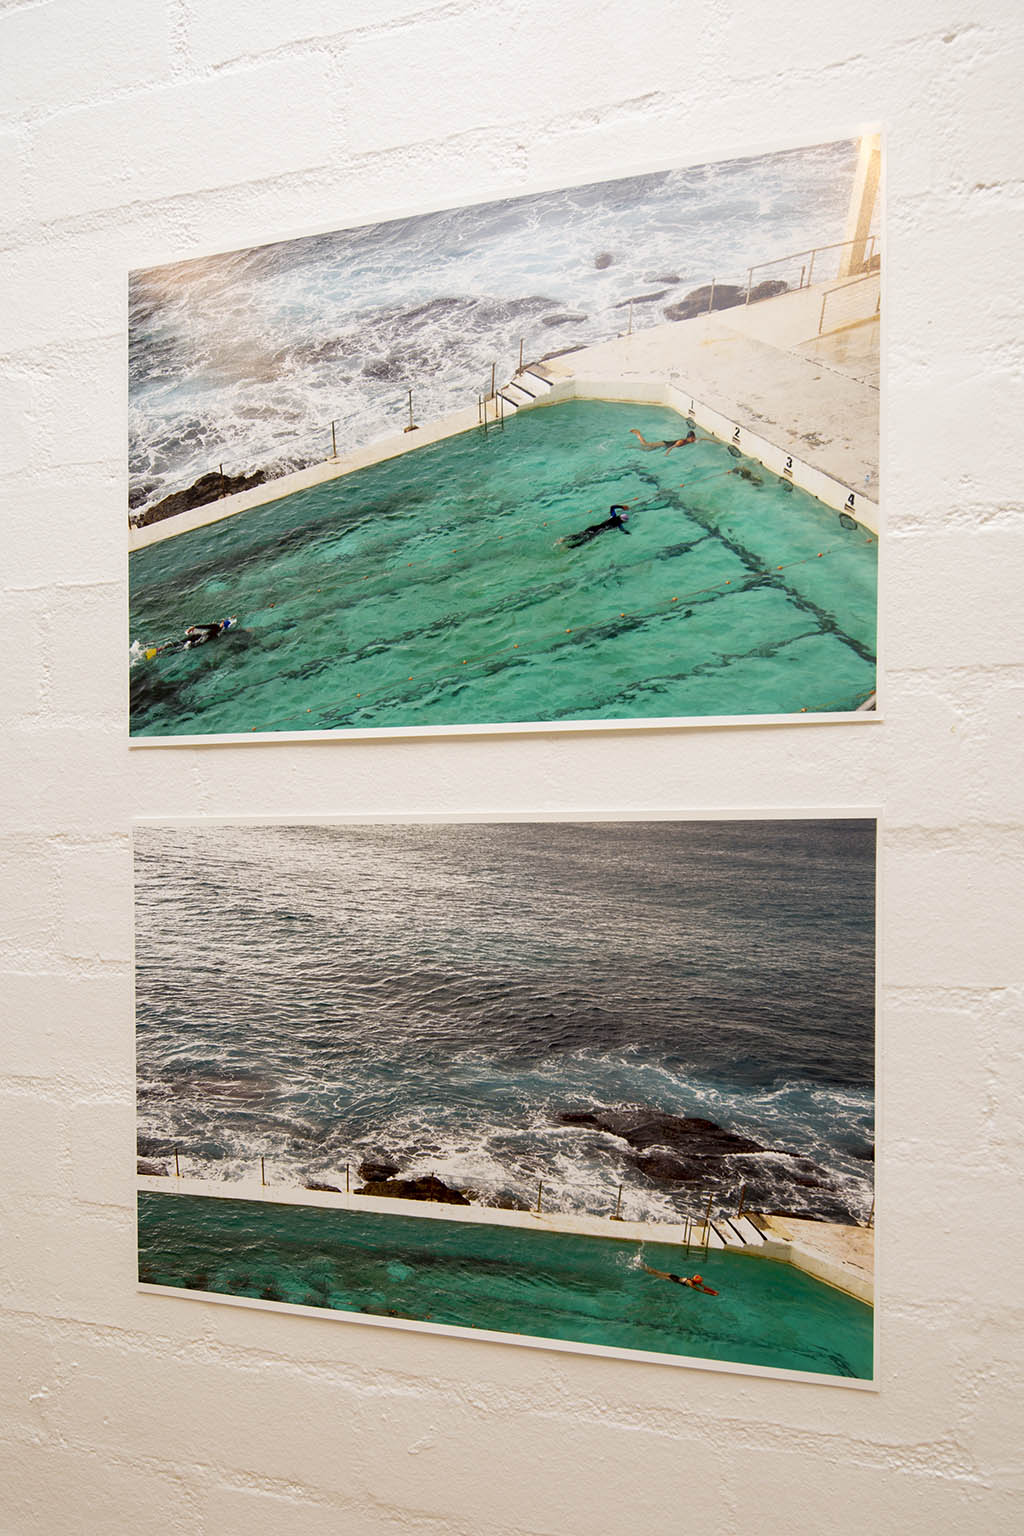 Susan Henderson, A sea of contrasts 1 and 2 2008, inkjet prints, 33.0 x 48.0cm